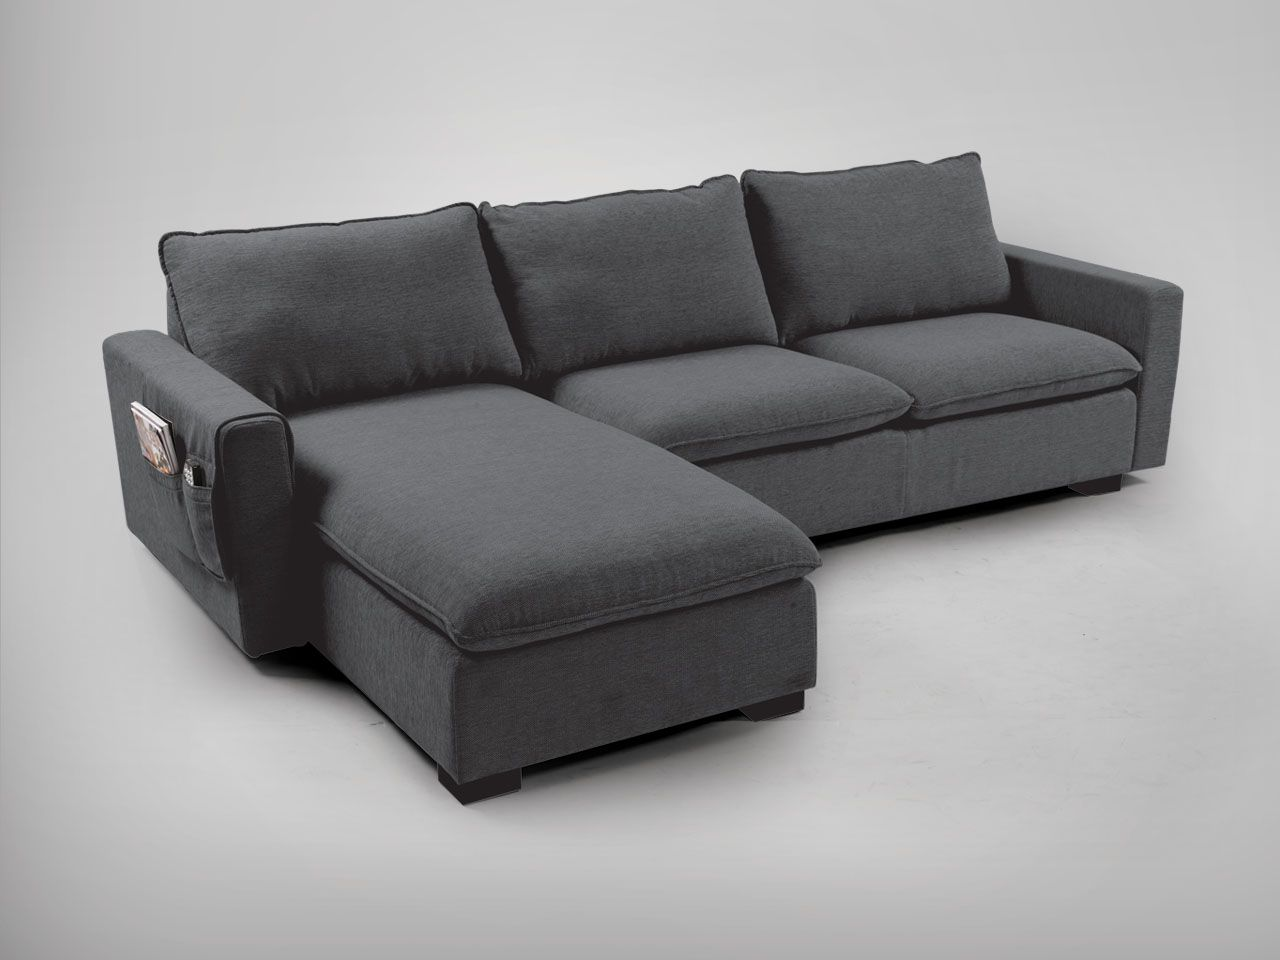 Nacho l shaped sofa dark grey comfort design the for Design sofa